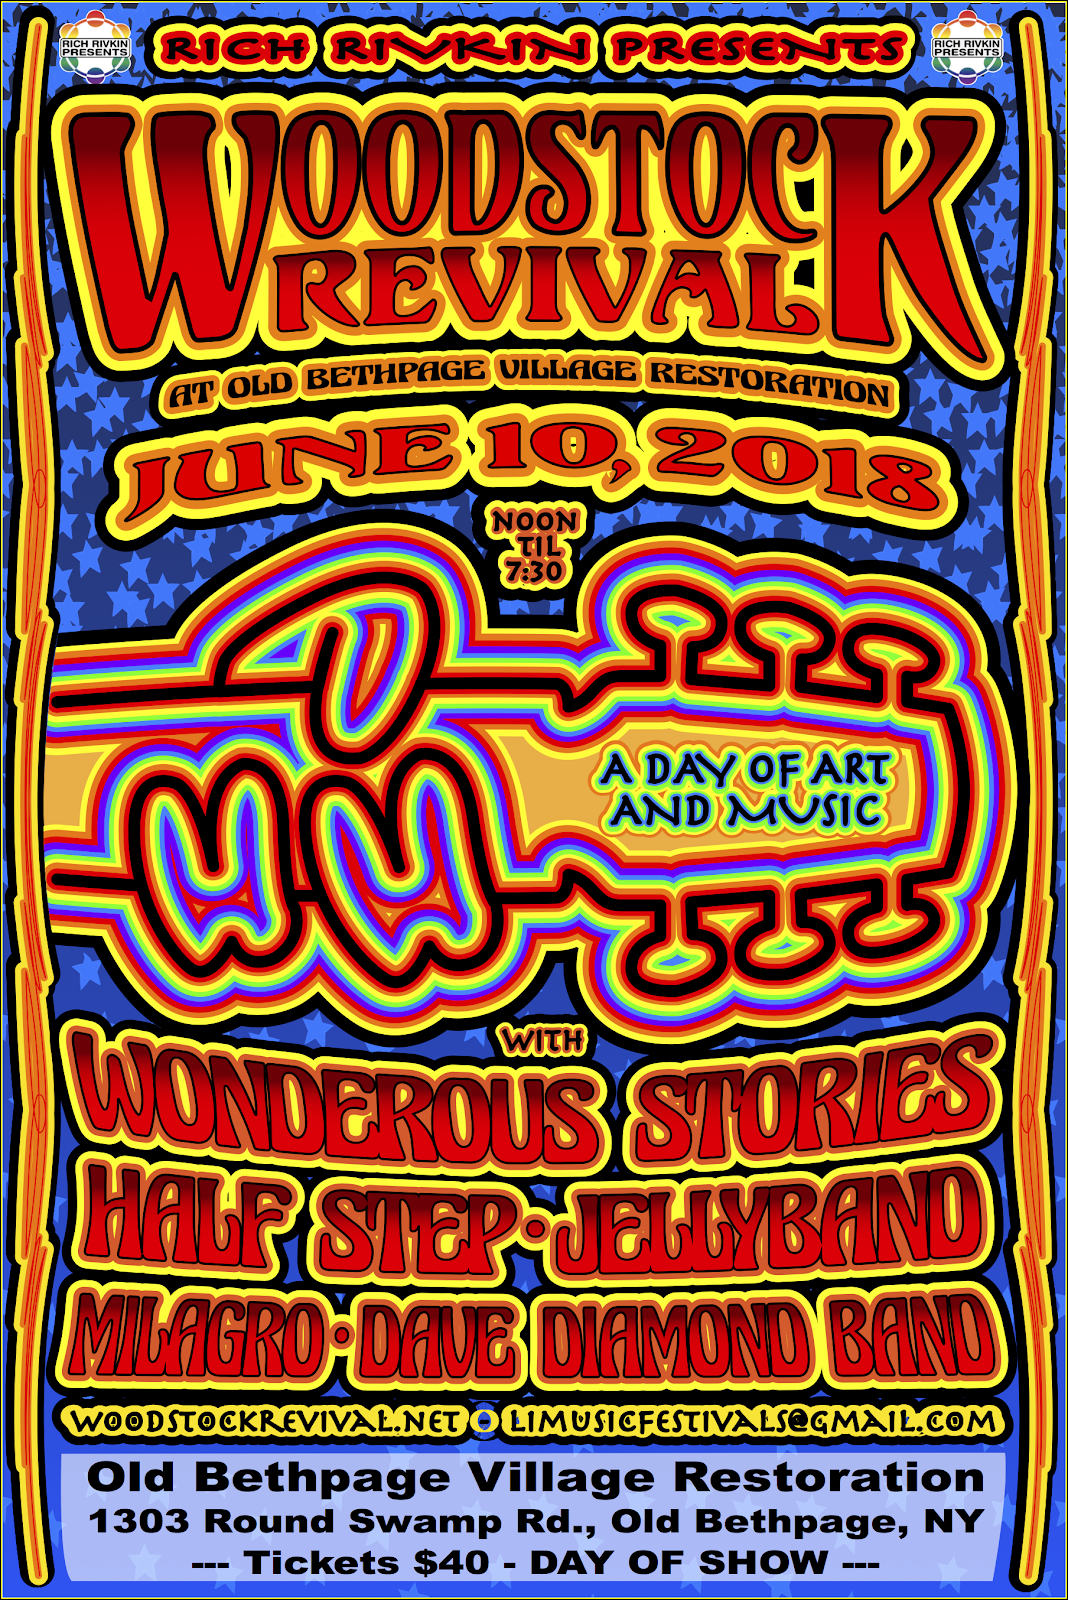 Woodstock Revival Concert to  Rock Old Bethpage Restoration  Sunday, June 10th